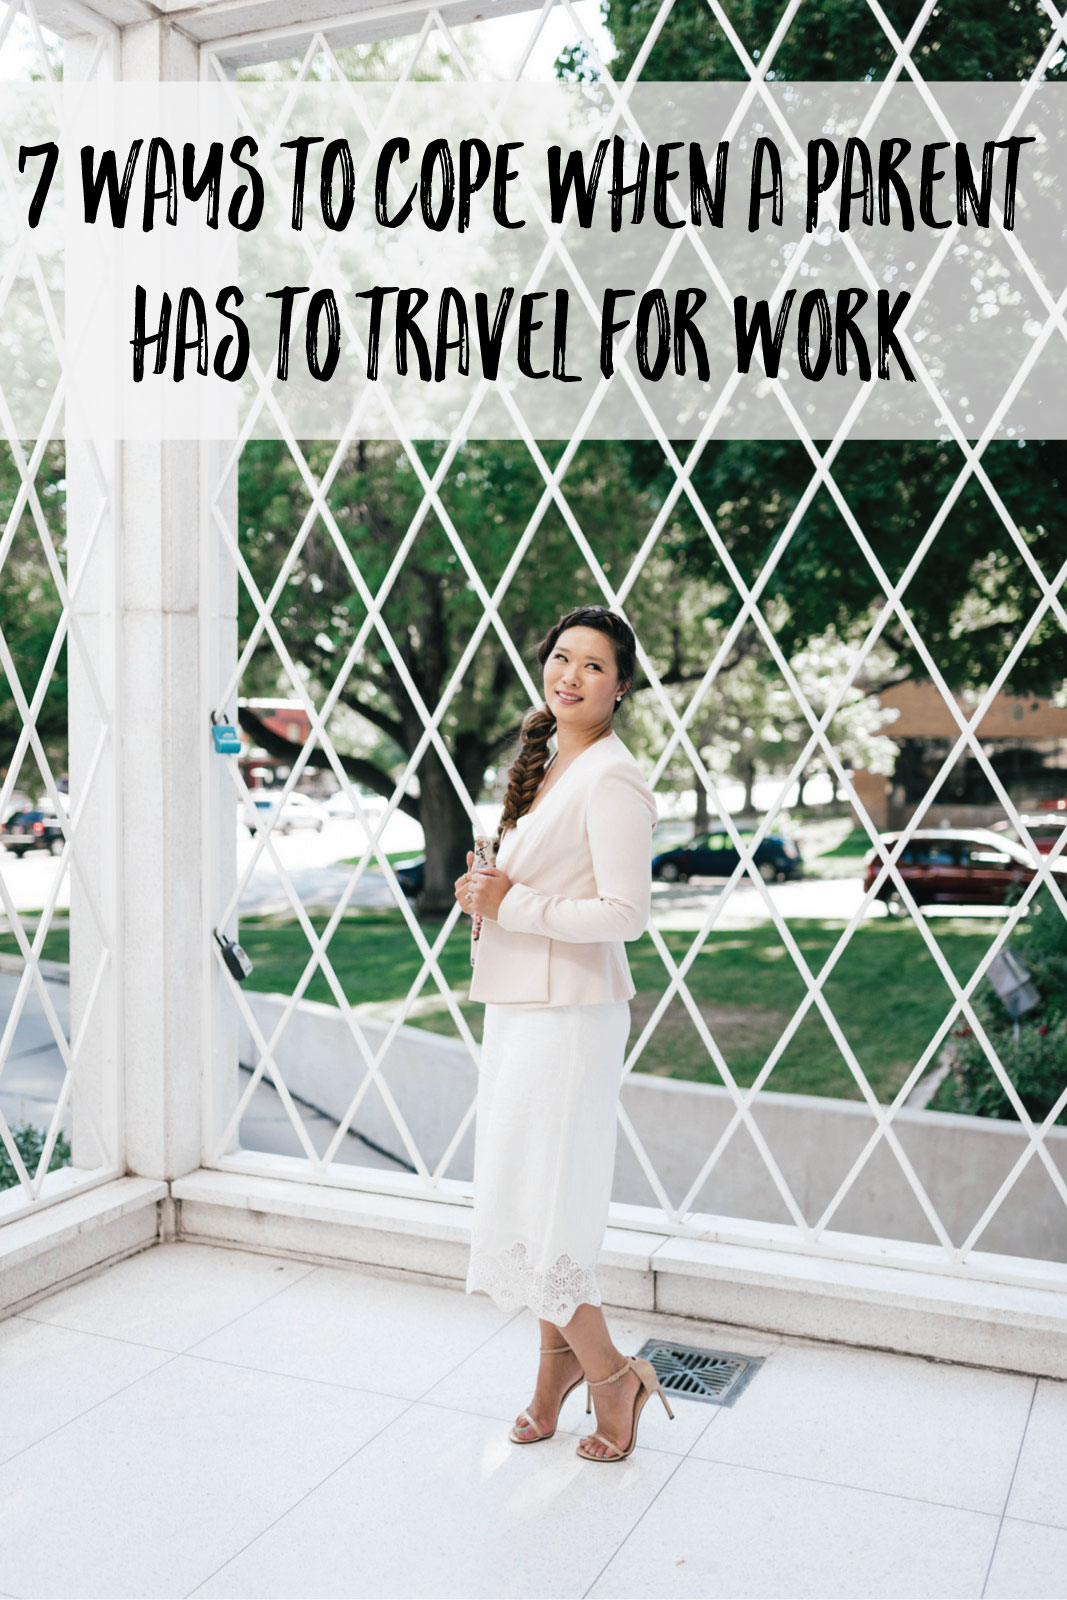 7 Ways To Cope When A Parent Has To Travel For Work